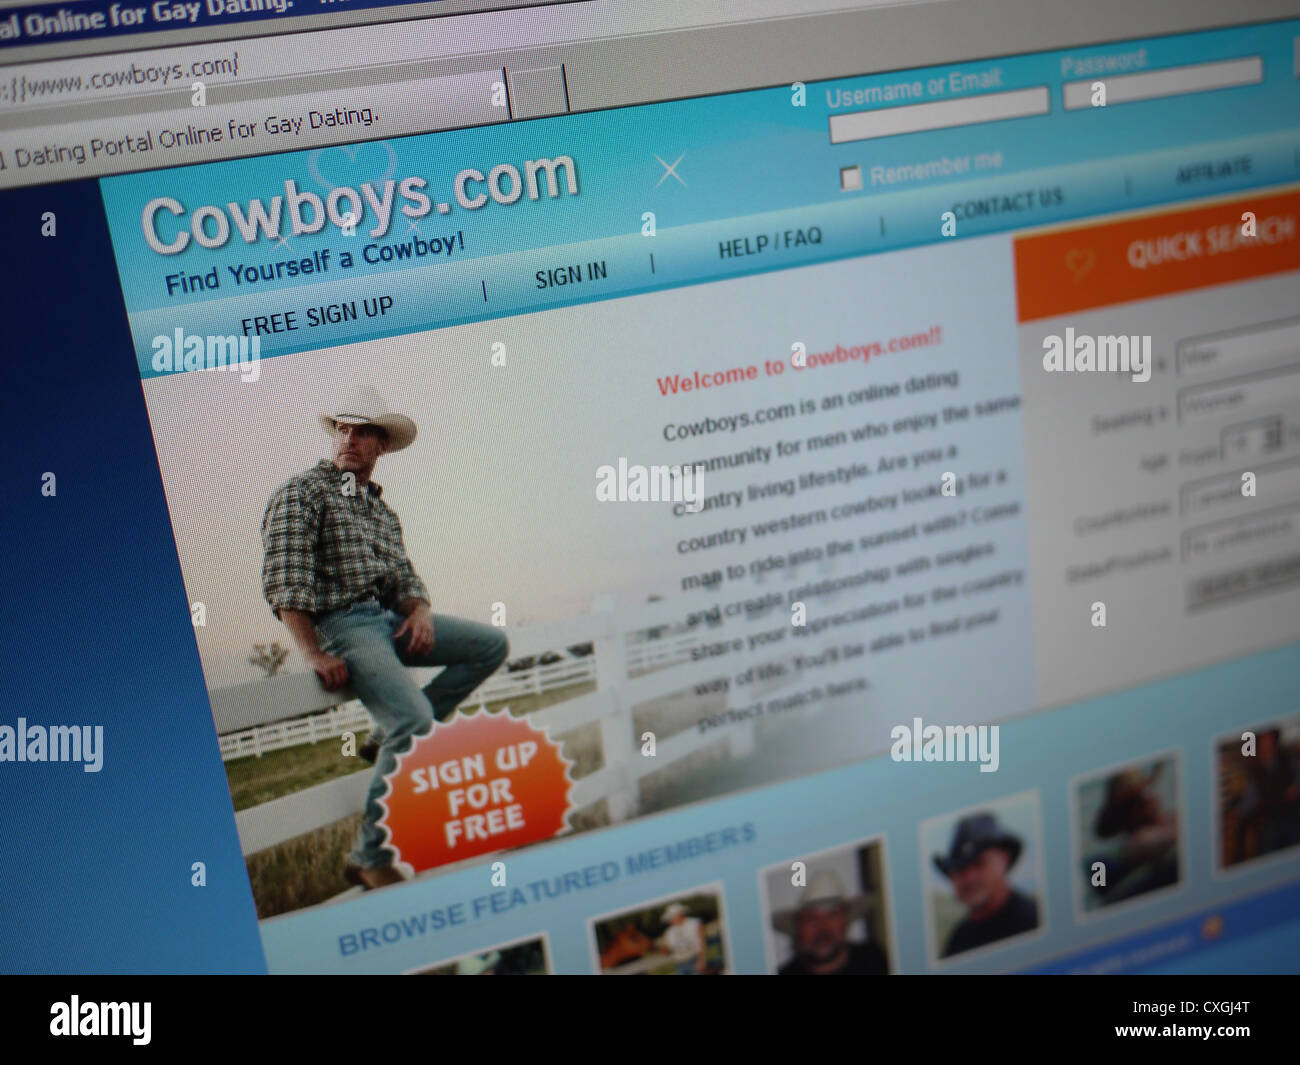 Cowboy dating sites free